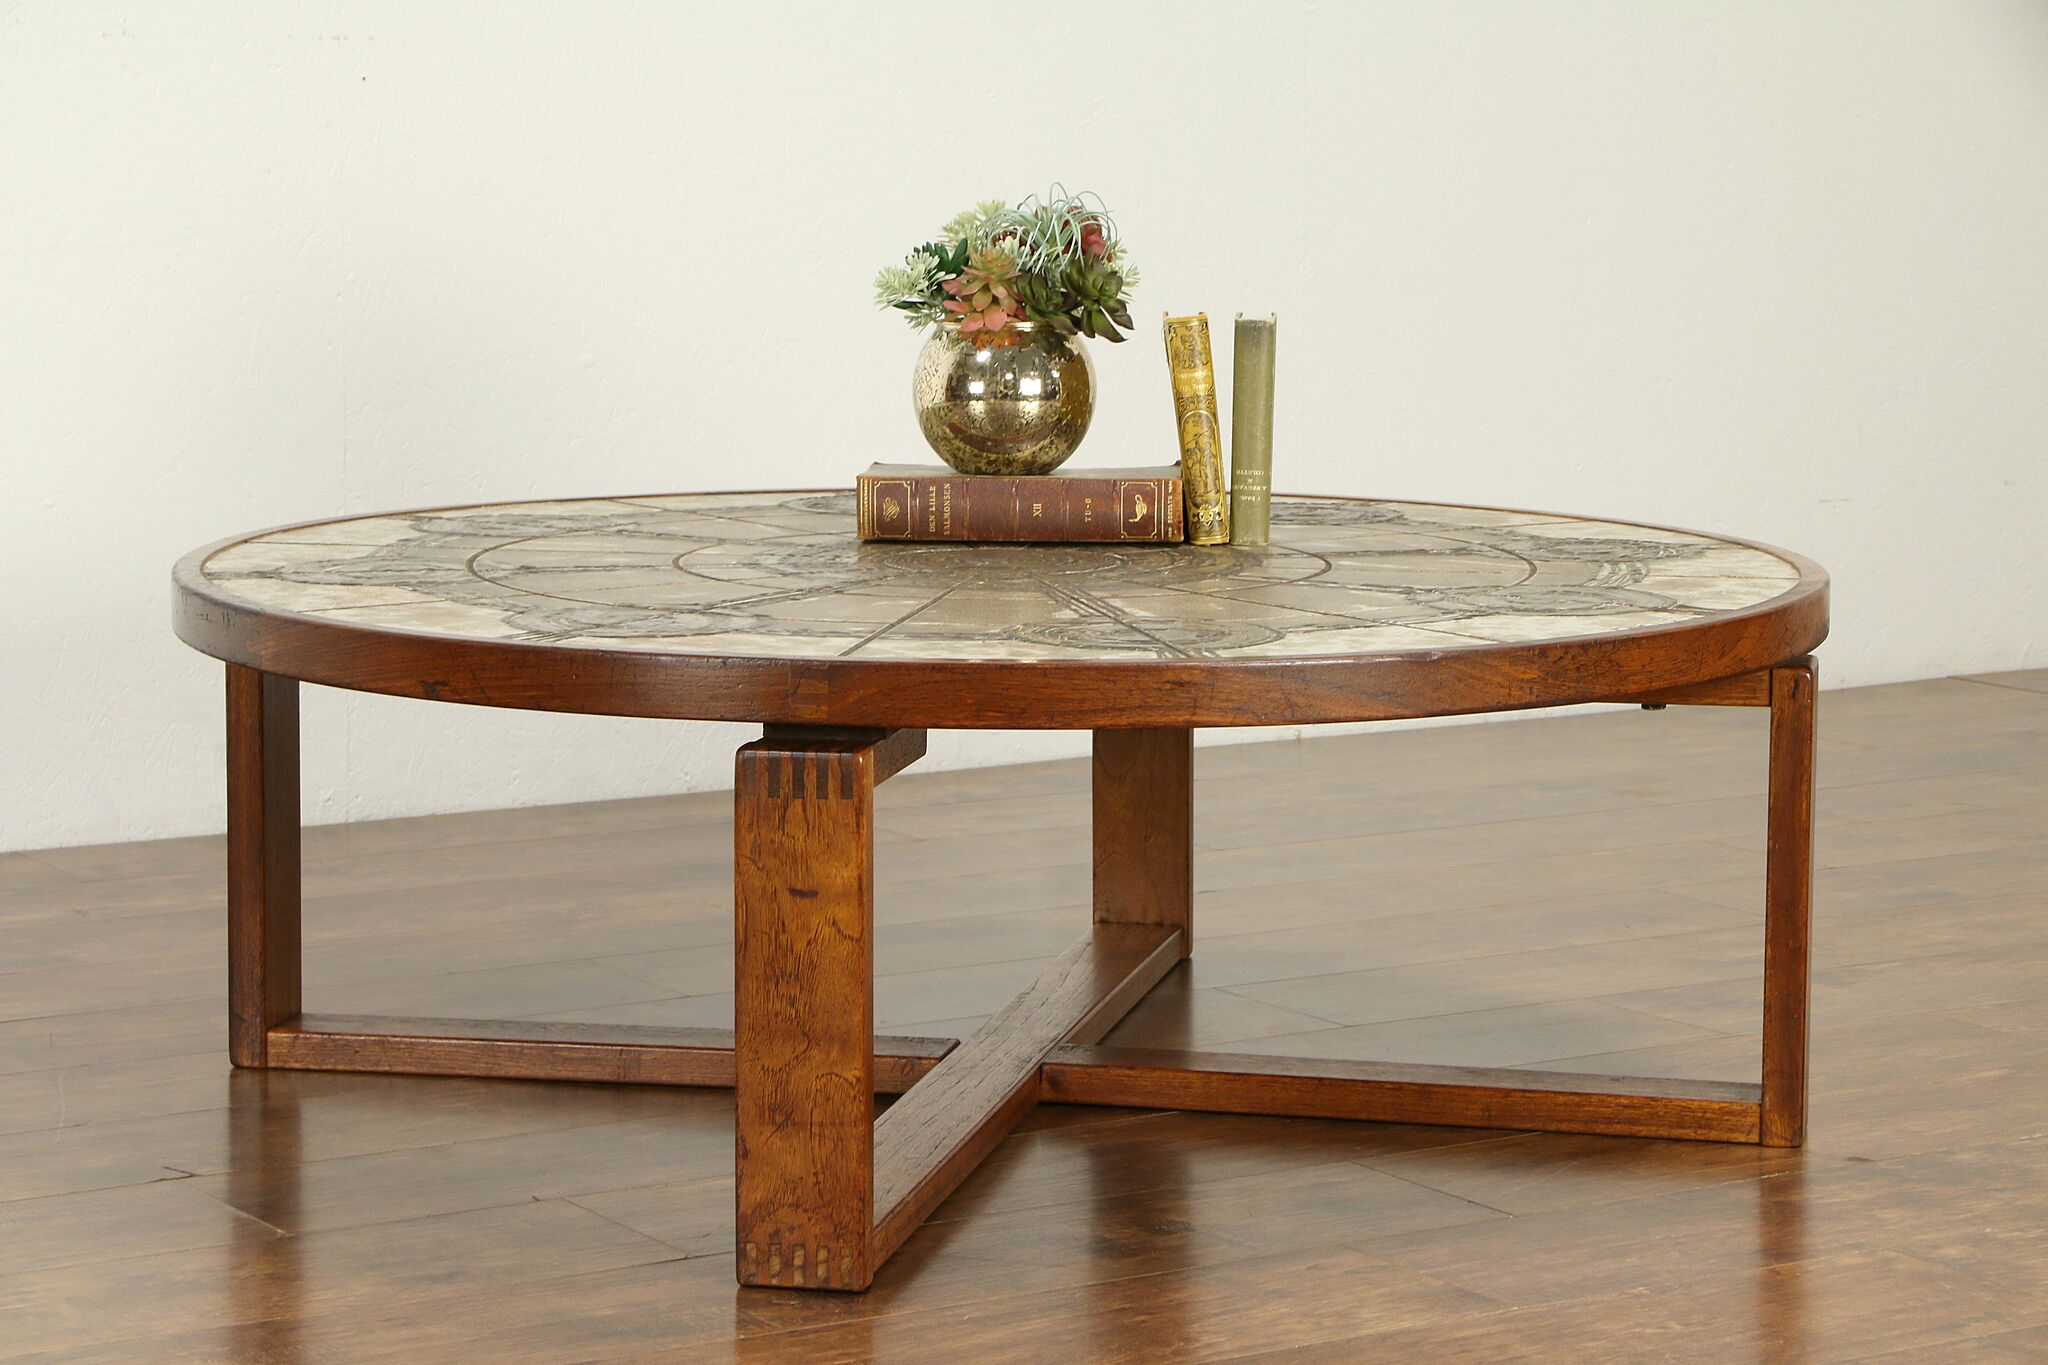 Picture of: Sold Midcentury Modern Vintage Danish Teak Tile Coffee Table Signed 31873 Harp Gallery Antiques Furniture